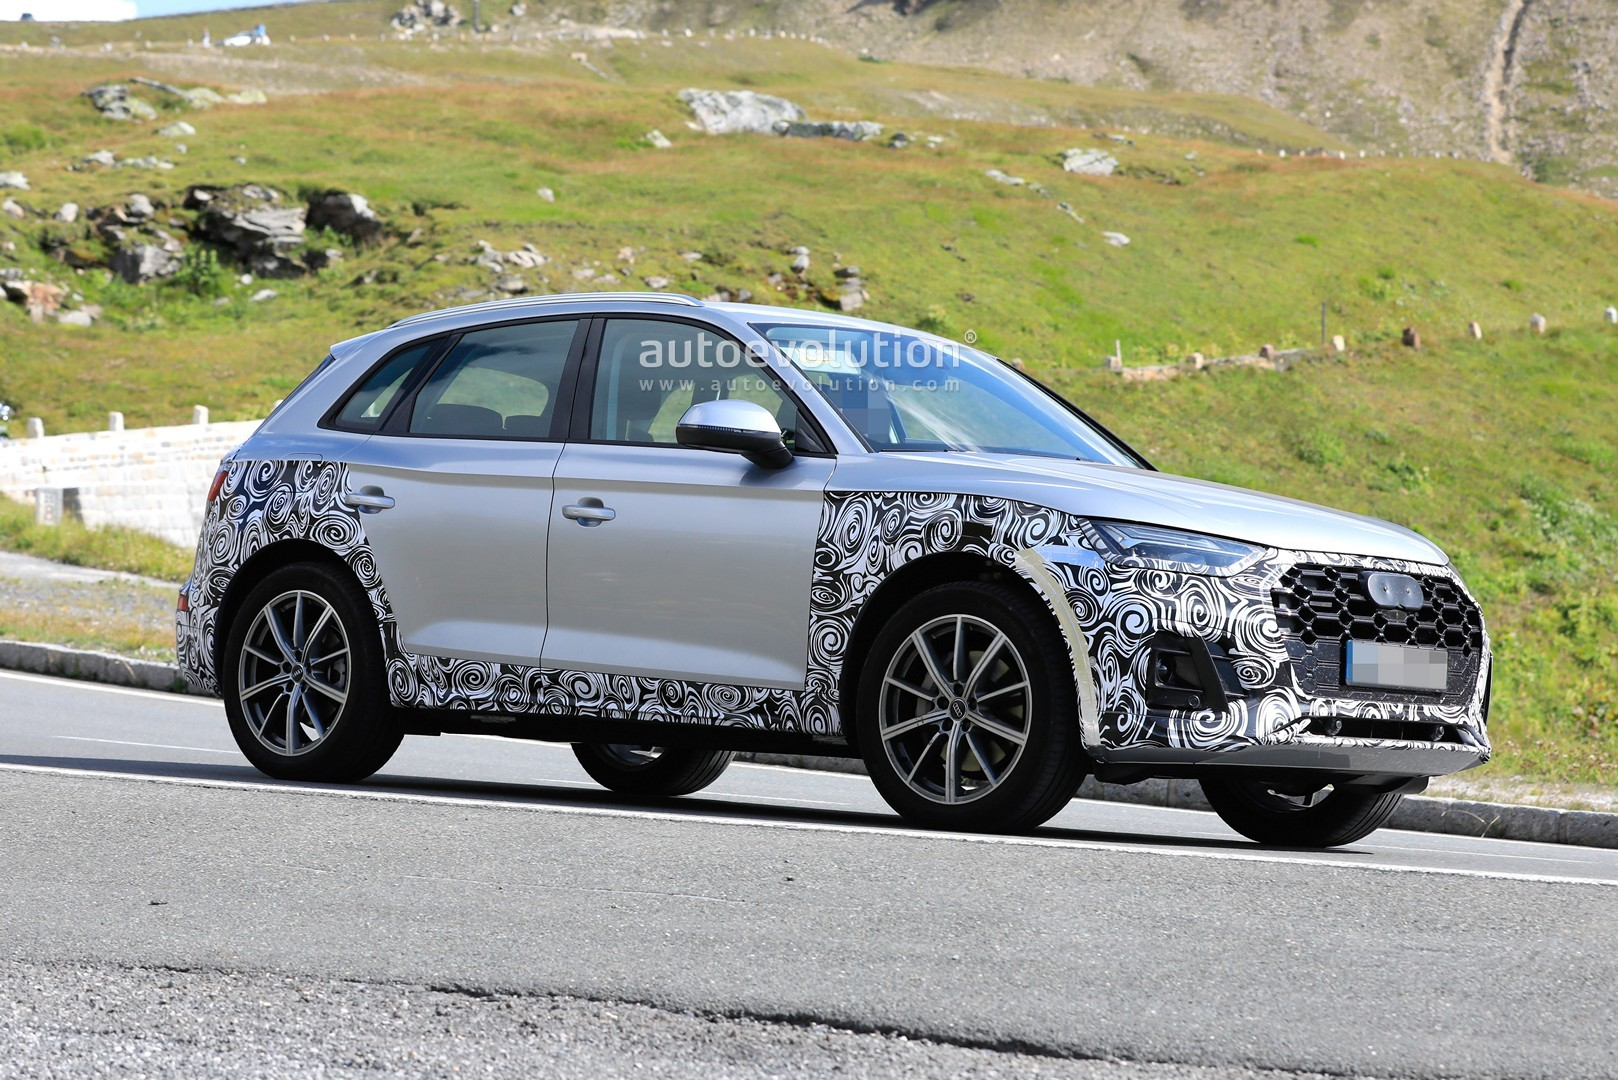 2021 Audi Q5 Facelift Looks Much Better, Spotted in Silver ...